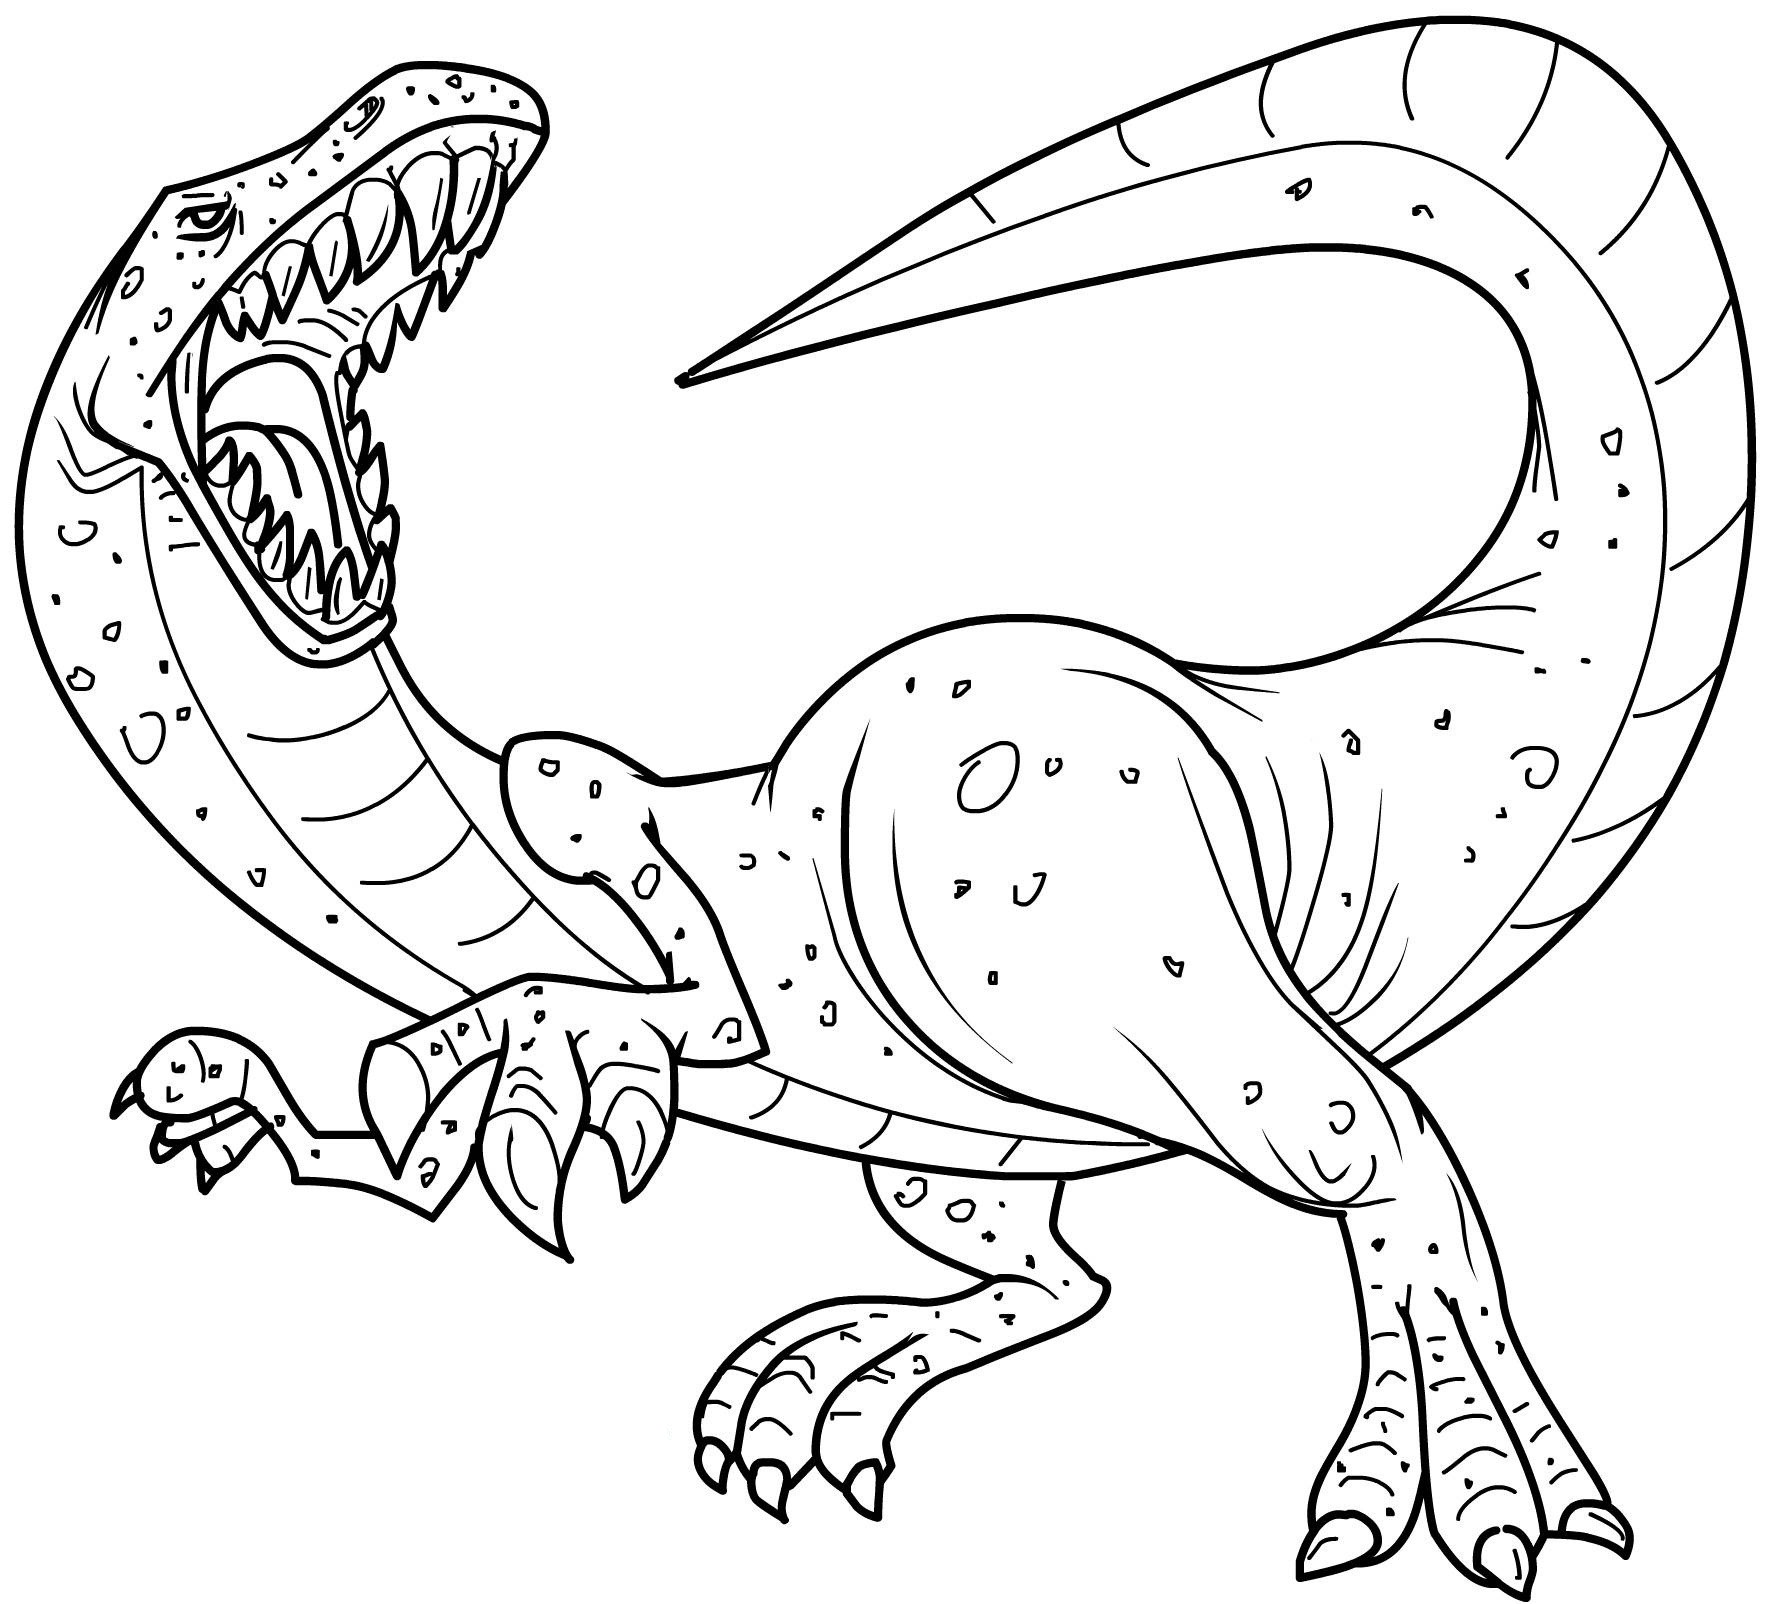 coloring dinosaur pages dinosaur colouring pages in the playroom coloring dinosaur pages